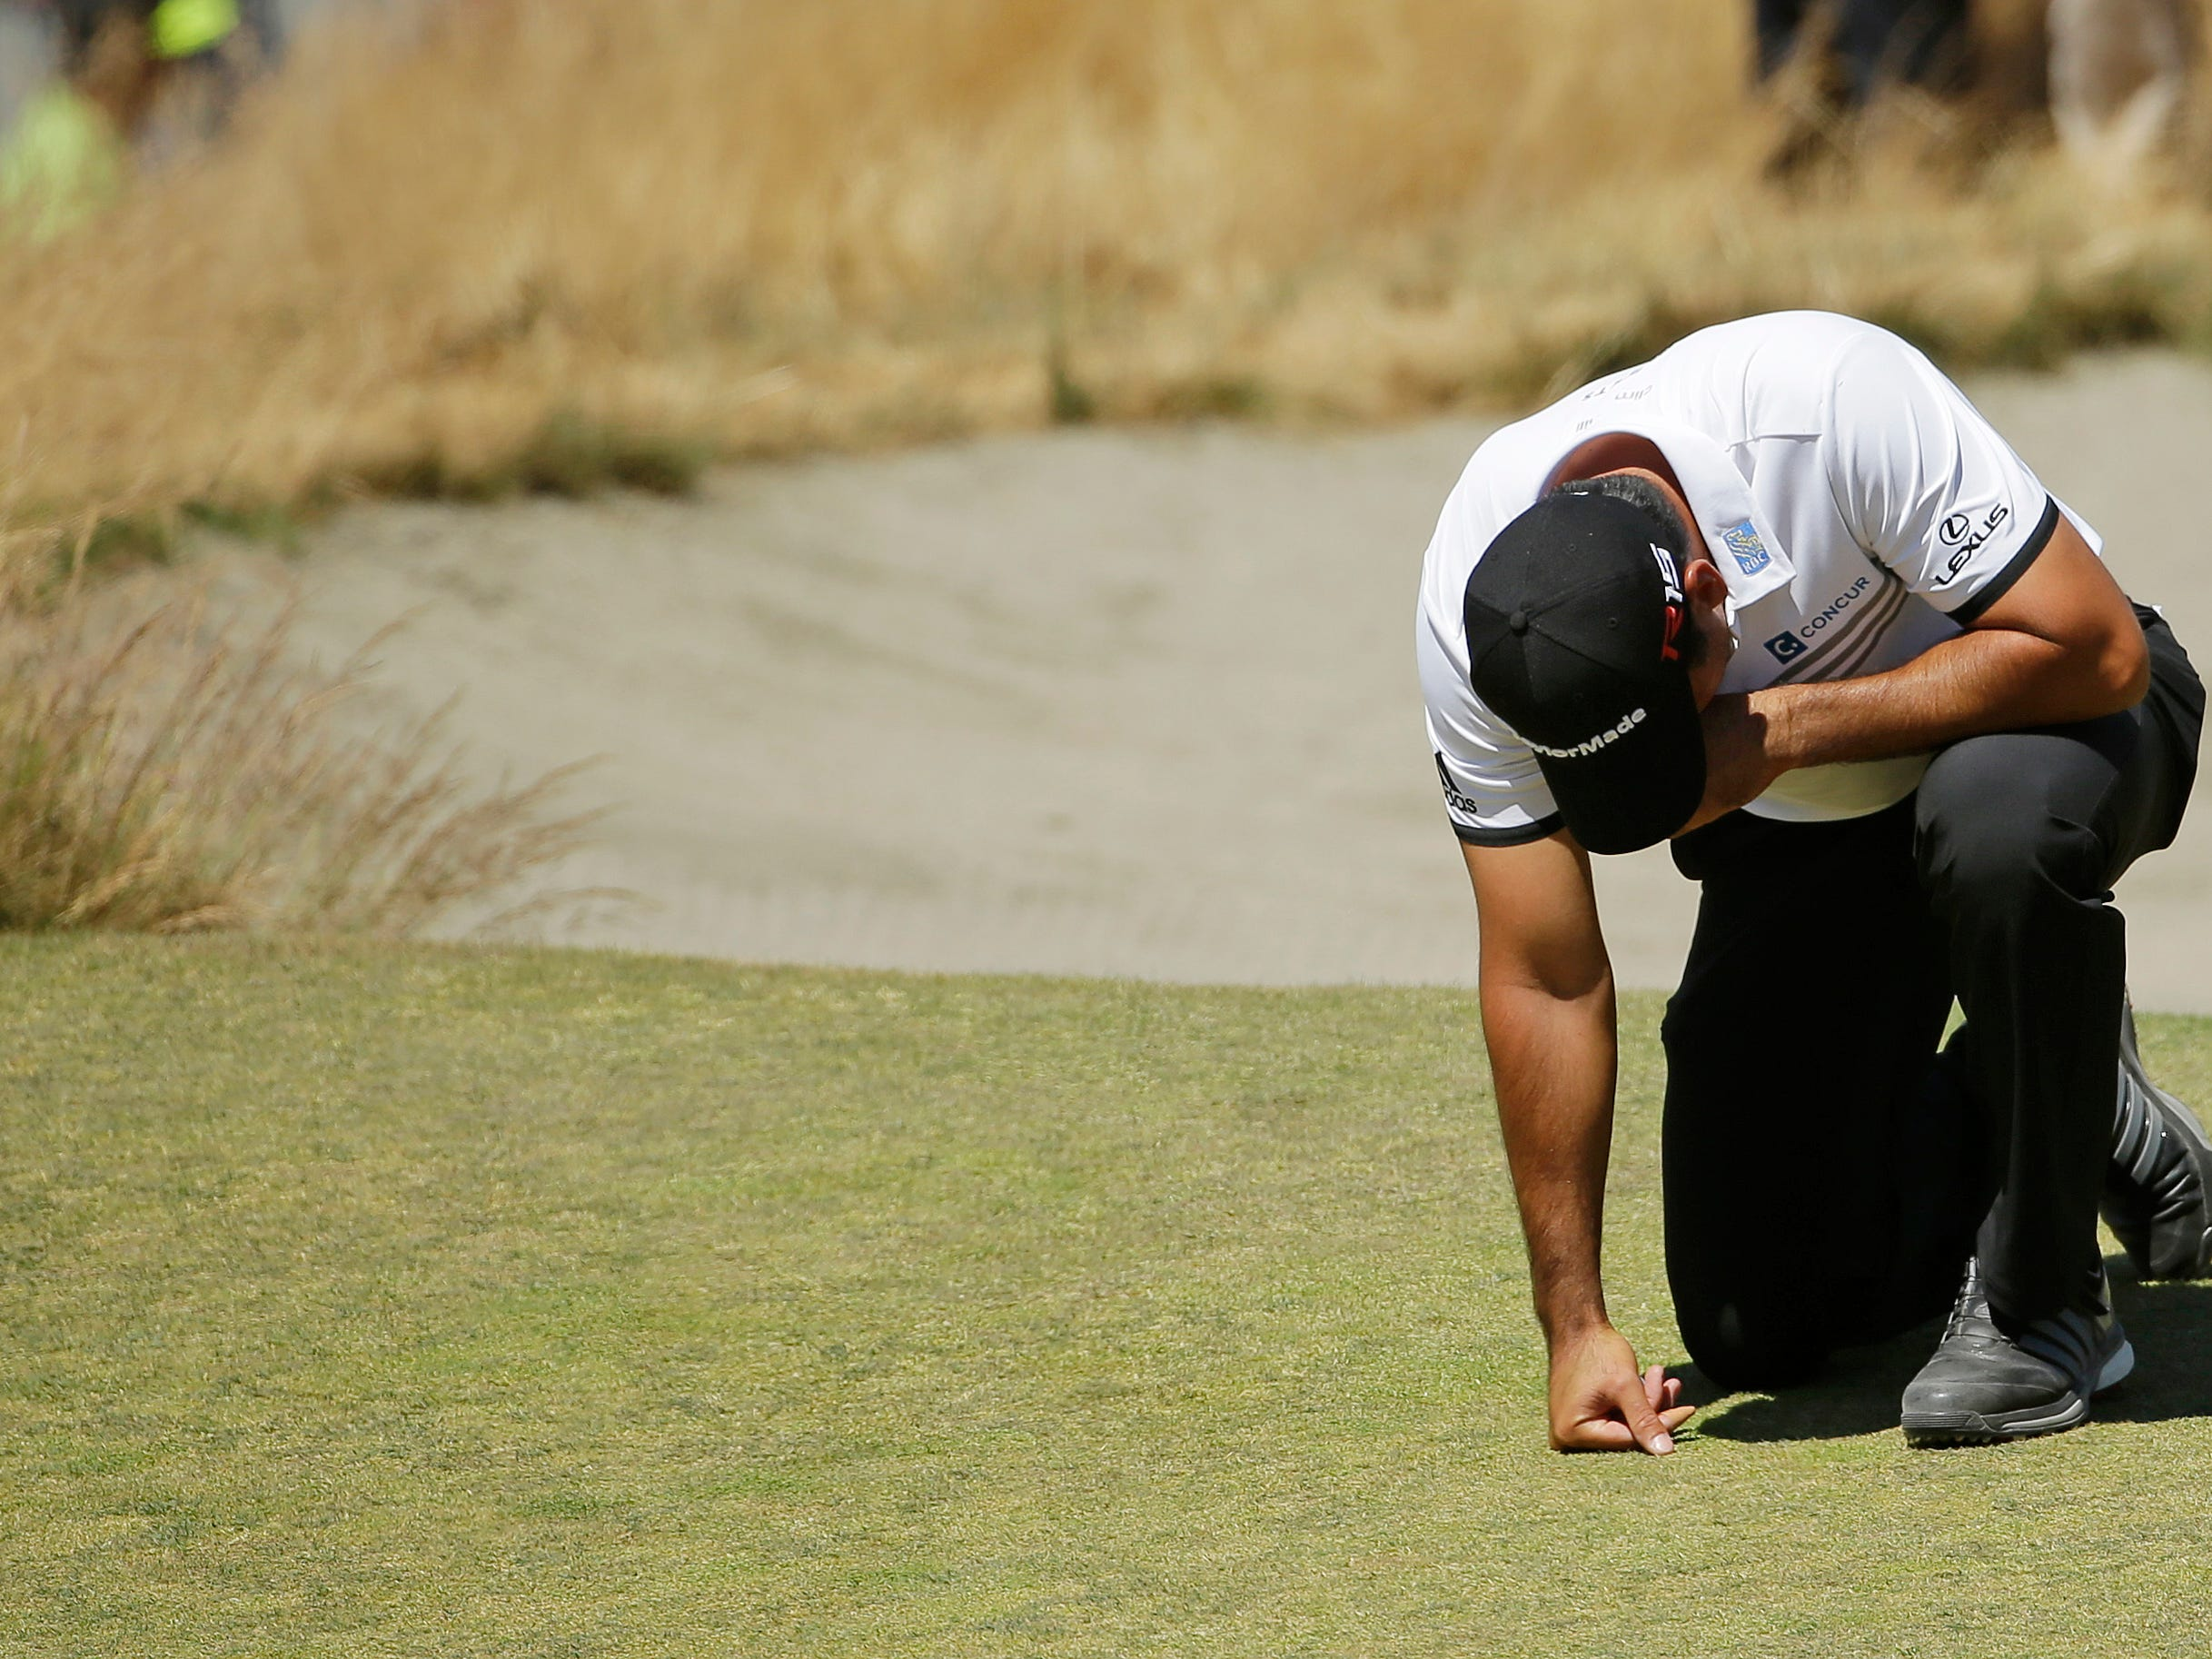 Jason Day, of Australia, kneels while waiting to putt on the ninth hole after having collapsed earlier in the fairway during the second round of the U.S. Open golf tournament at Chambers Bay on Friday, June 19, 2015 in University Place, Wash. (AP Photo/Ted S. Warren)